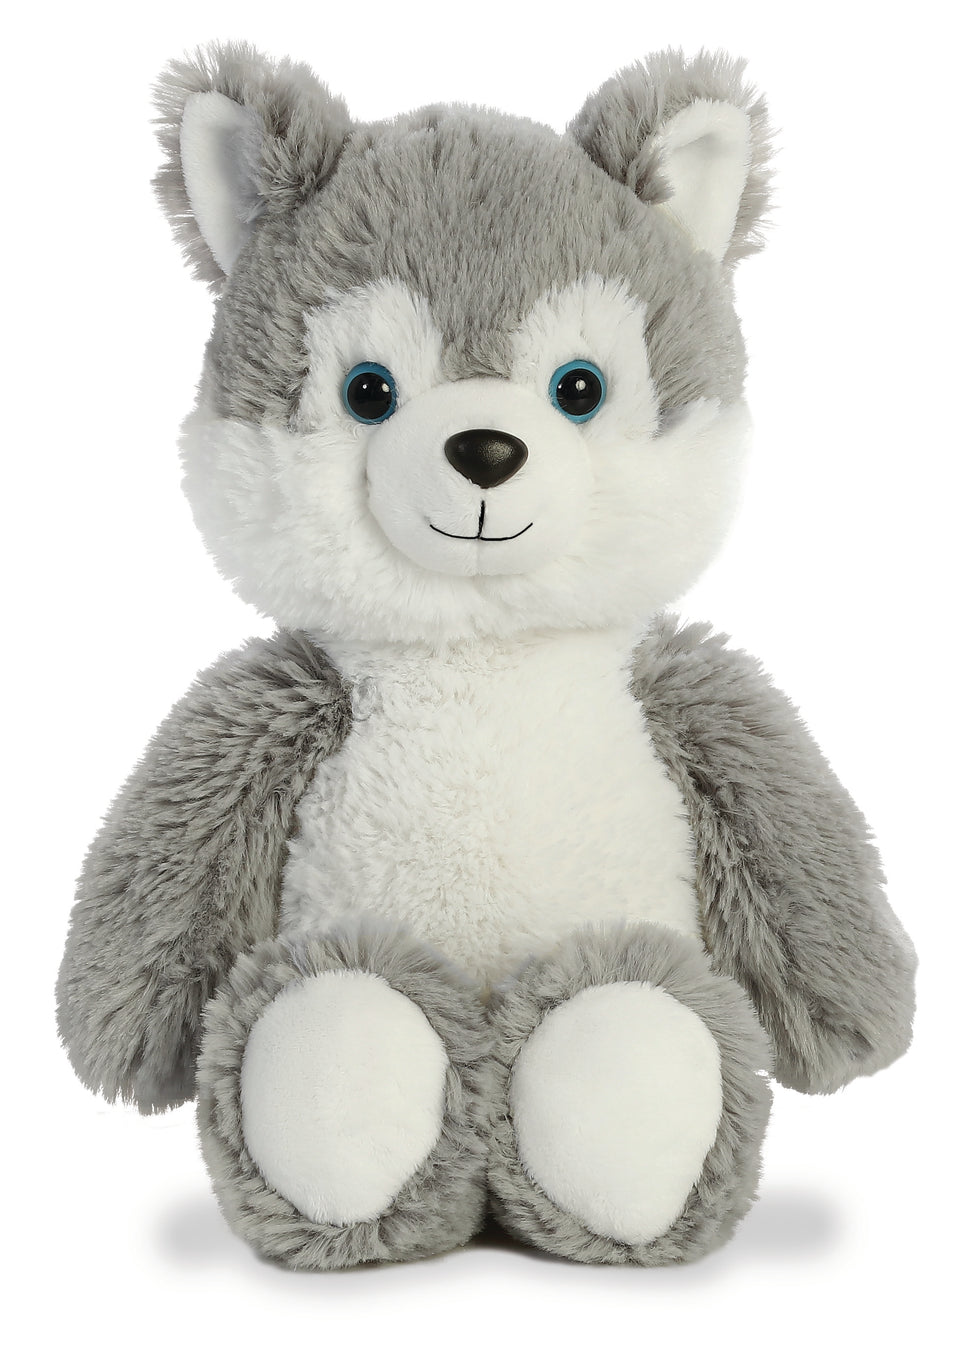 "AURORA CUDDLY FRIENDS PLUSH 12"" HUSKY CUDDLY SOFT TOY TEDDY"